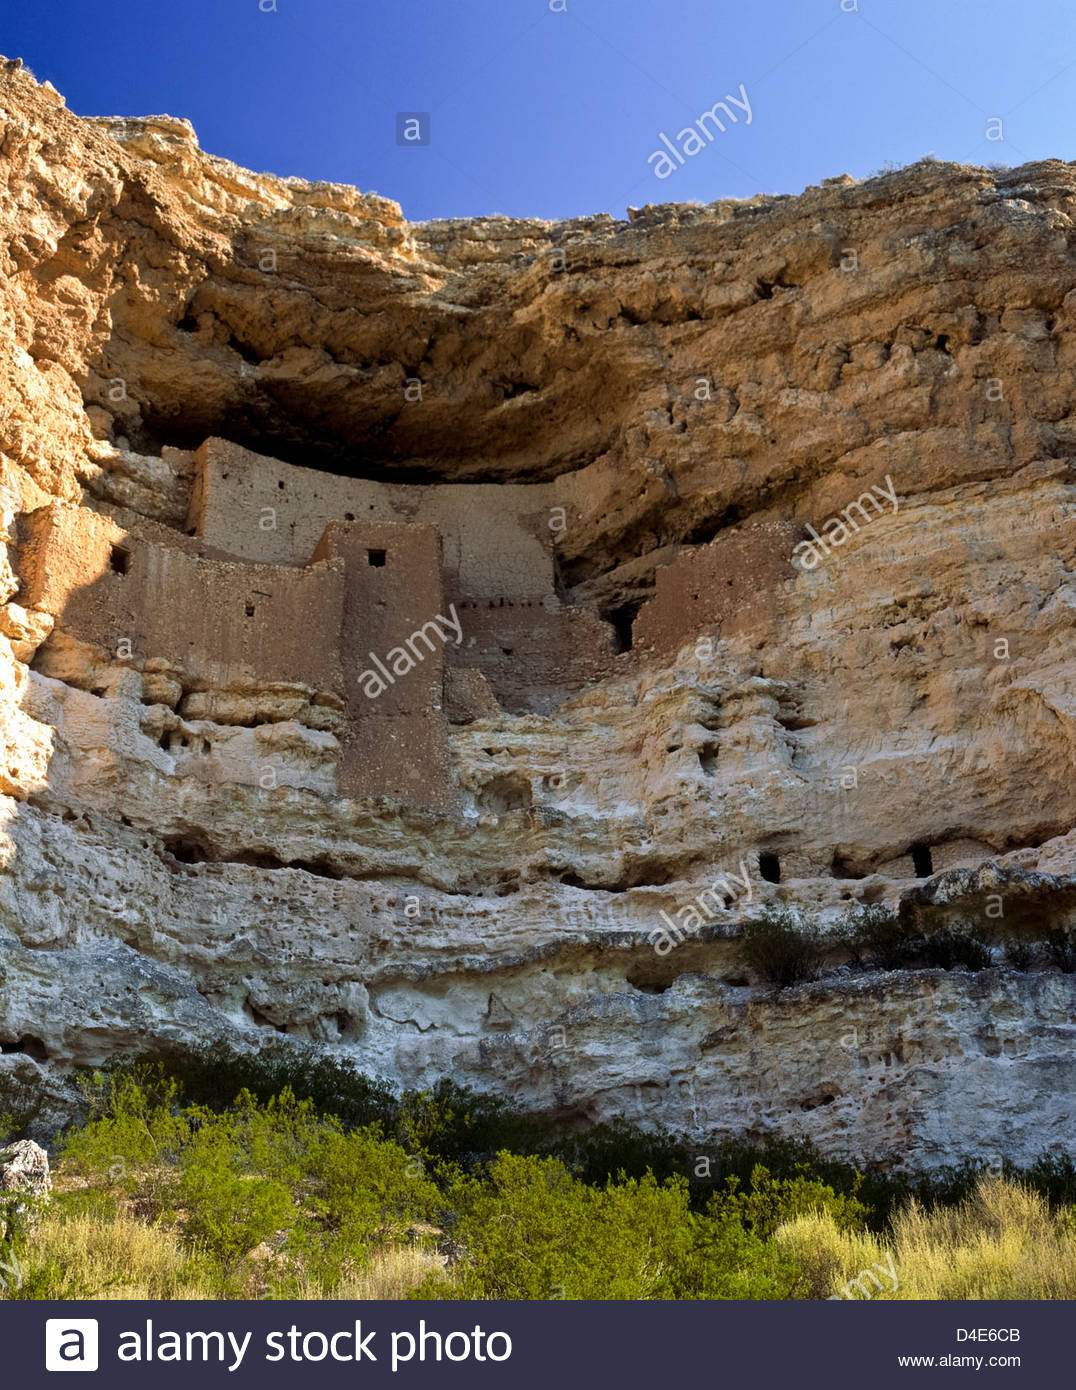 Utah Field House of Natural History State Park Museum Vernal, Montezumas Castle National Monument in the Verde Valley near Camp ...